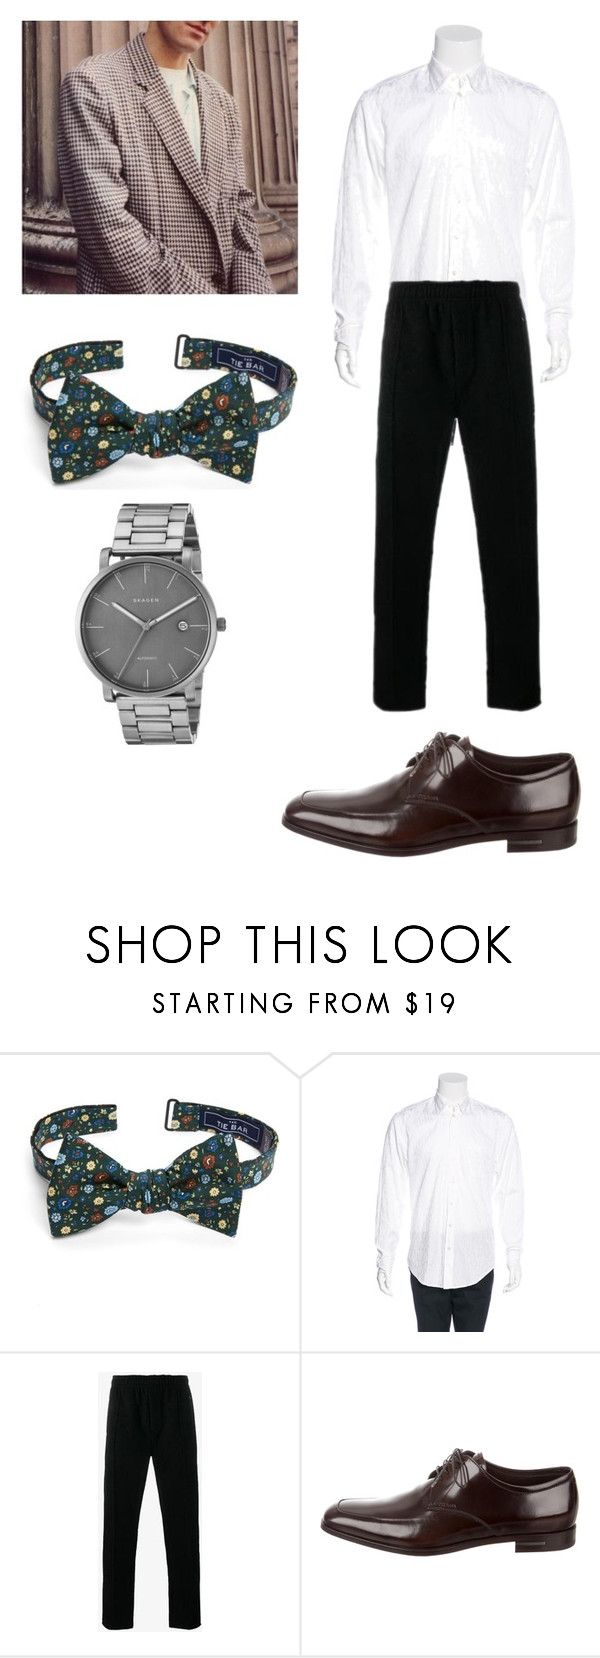 """Australian designer"" by sparklepieceblog on Polyvore featuring The Tie Bar, Our Legacy, Prada, Skagen, men's fashion and menswear"